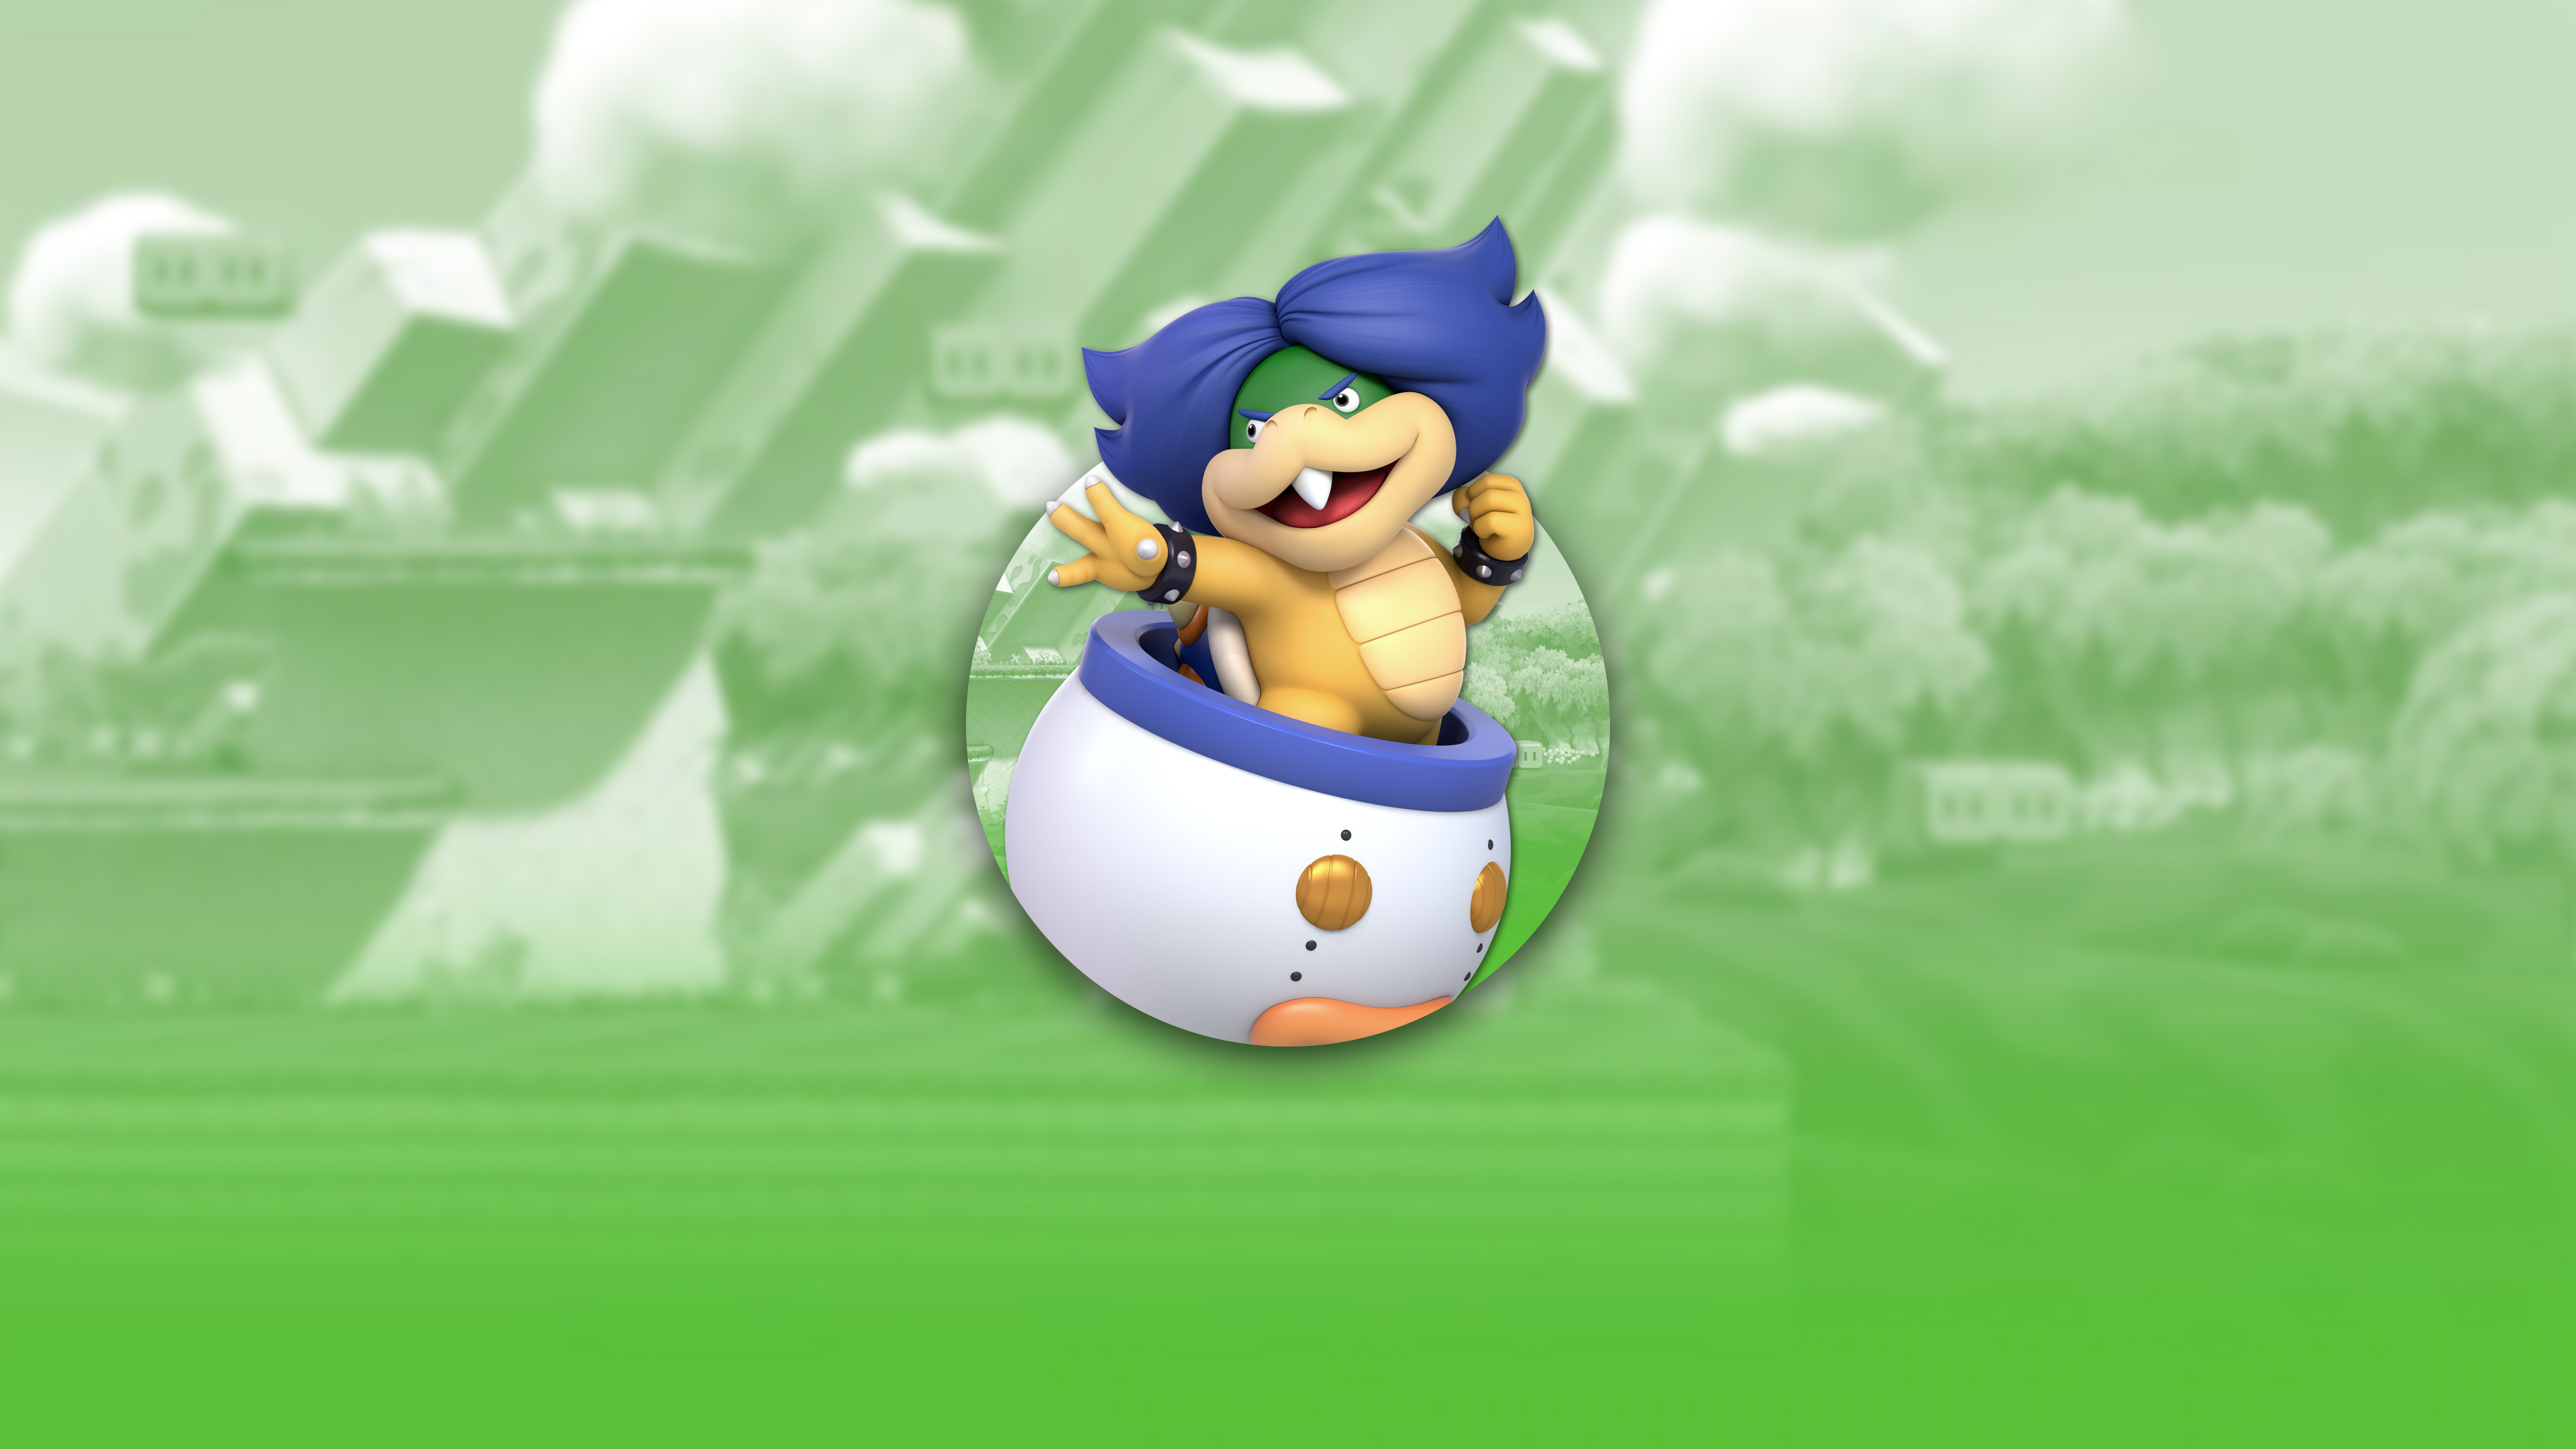 super smash bros ultimate koopalings ludwig von koopa uhd 4k wallpaper